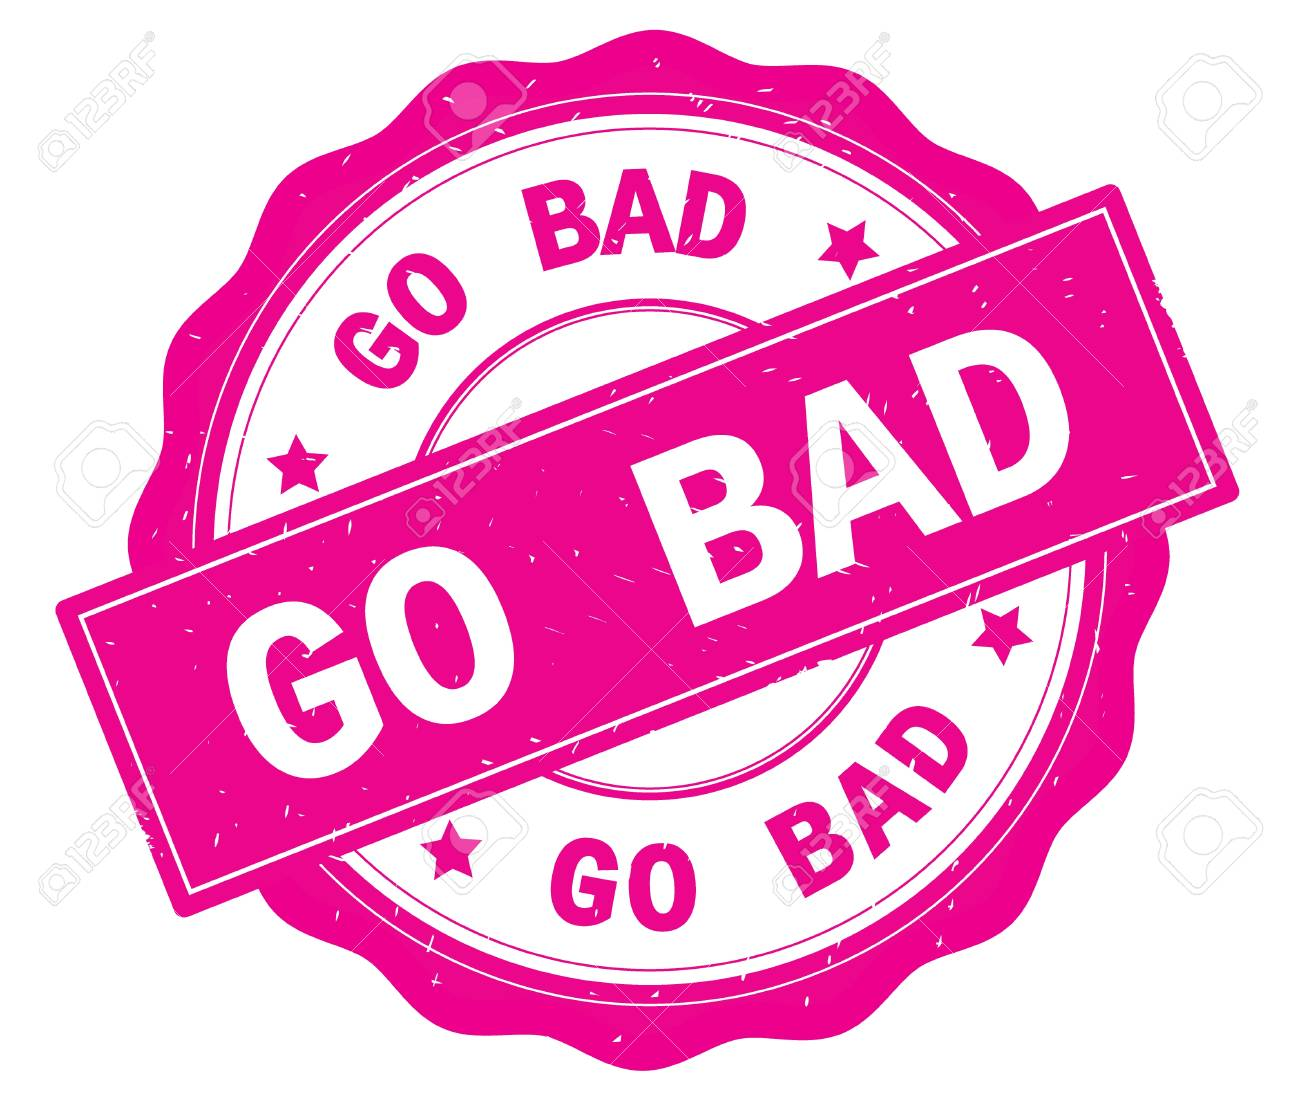 GO BAD Text, Written On Pink, Lacey Border, Round Vintage Textured Badge  Stamp